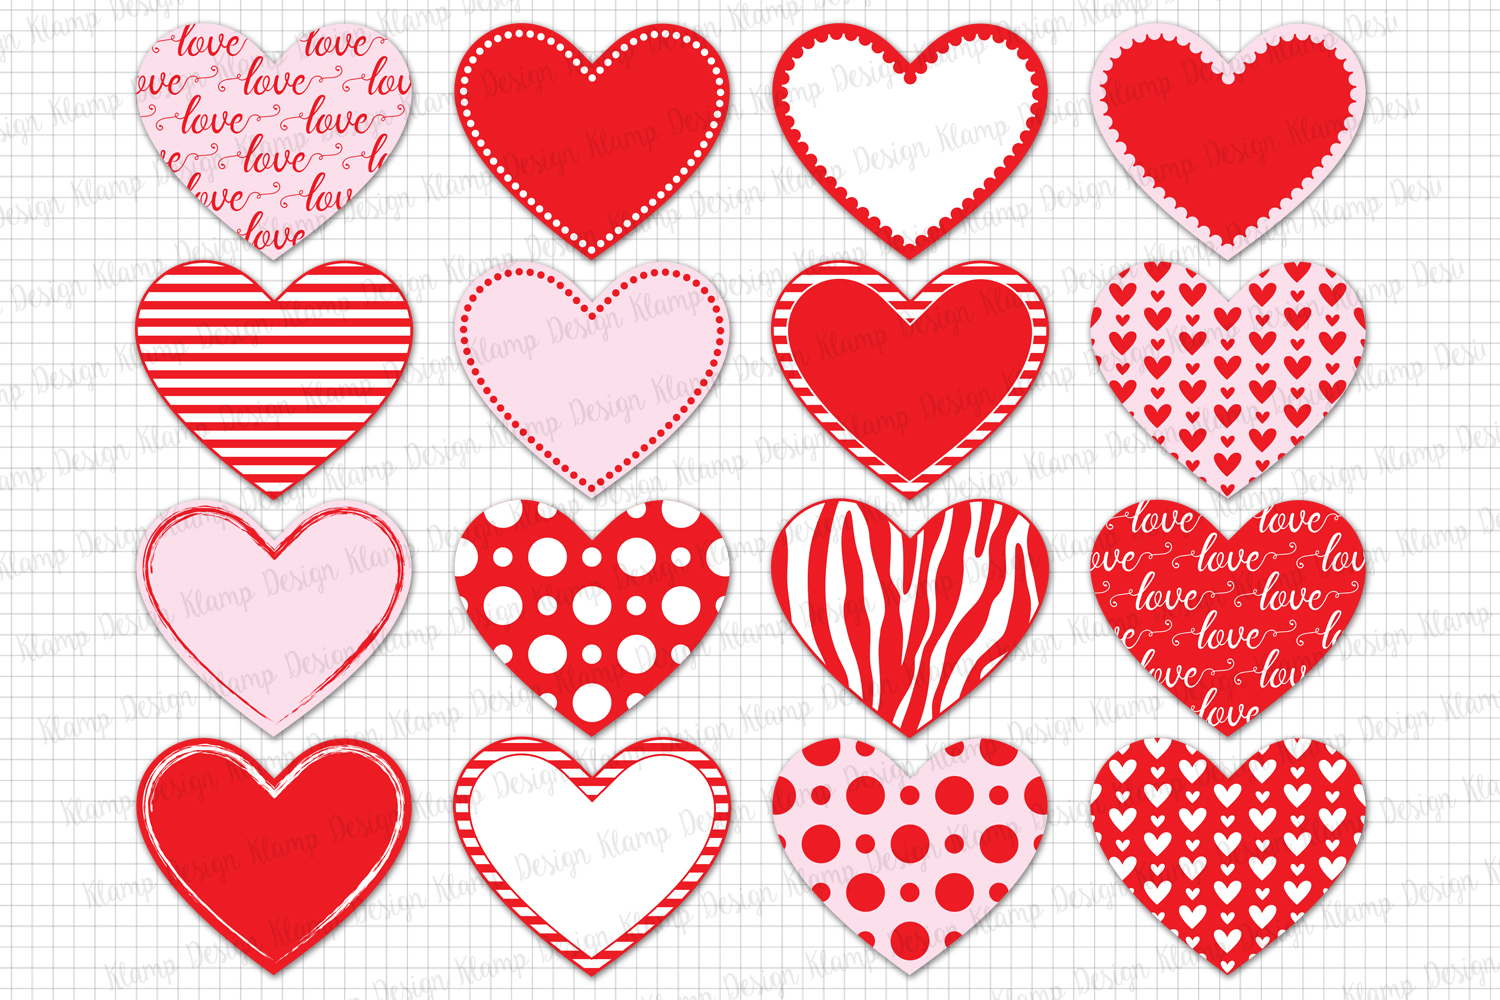 Heart Graphic and Illustrations Heart Clipart.